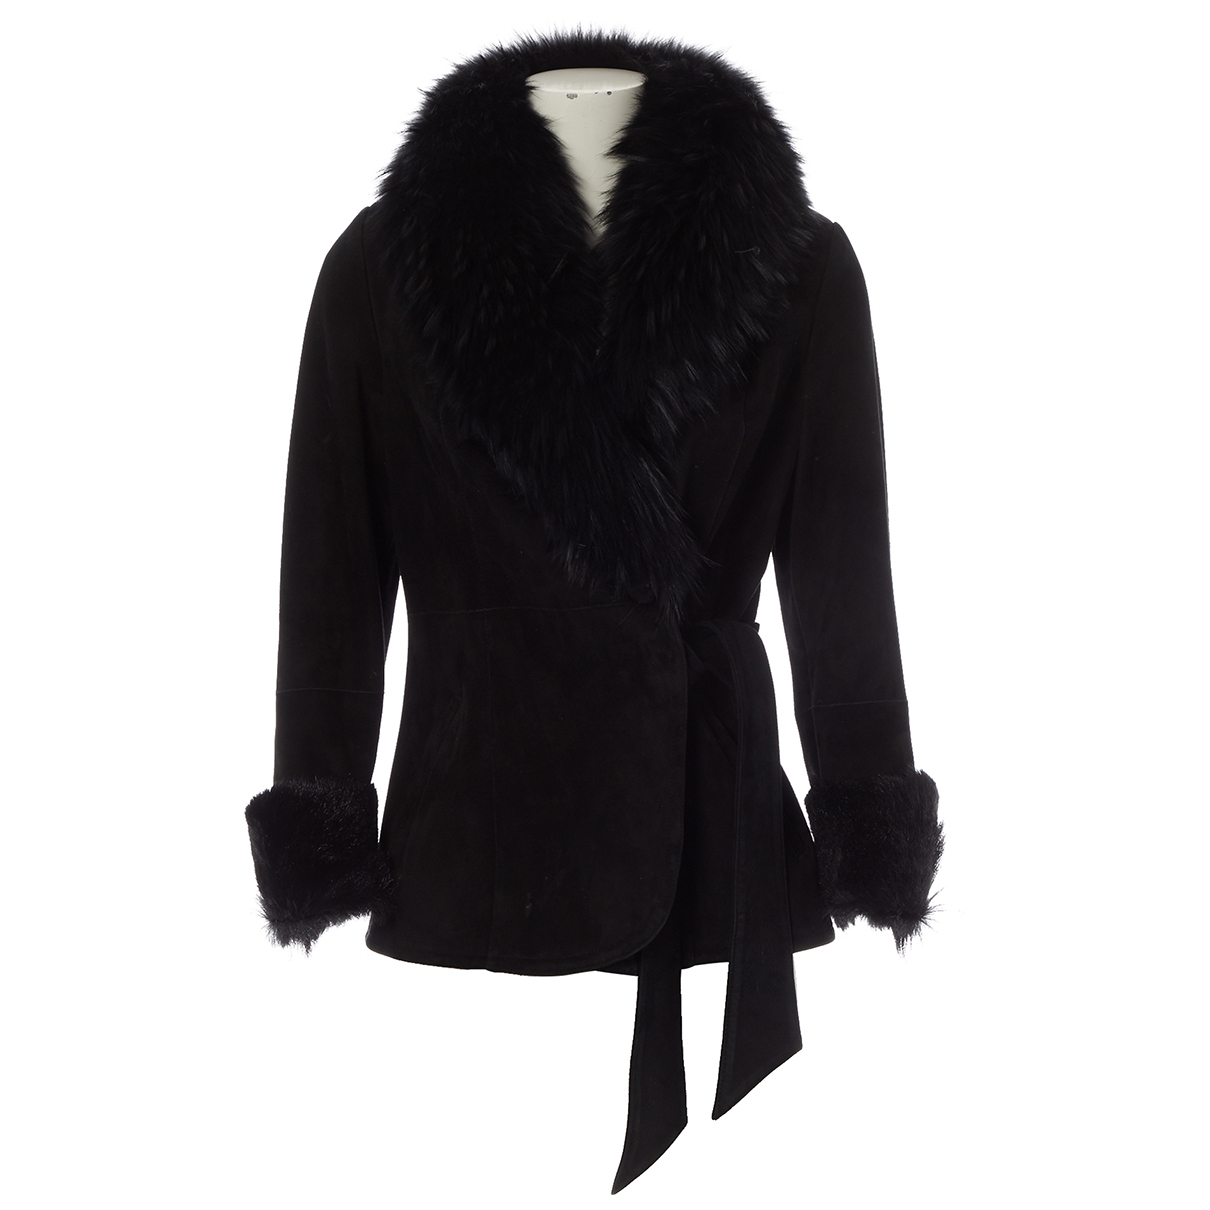 Sprung Frères \N Black Shearling coat for Women 40 FR